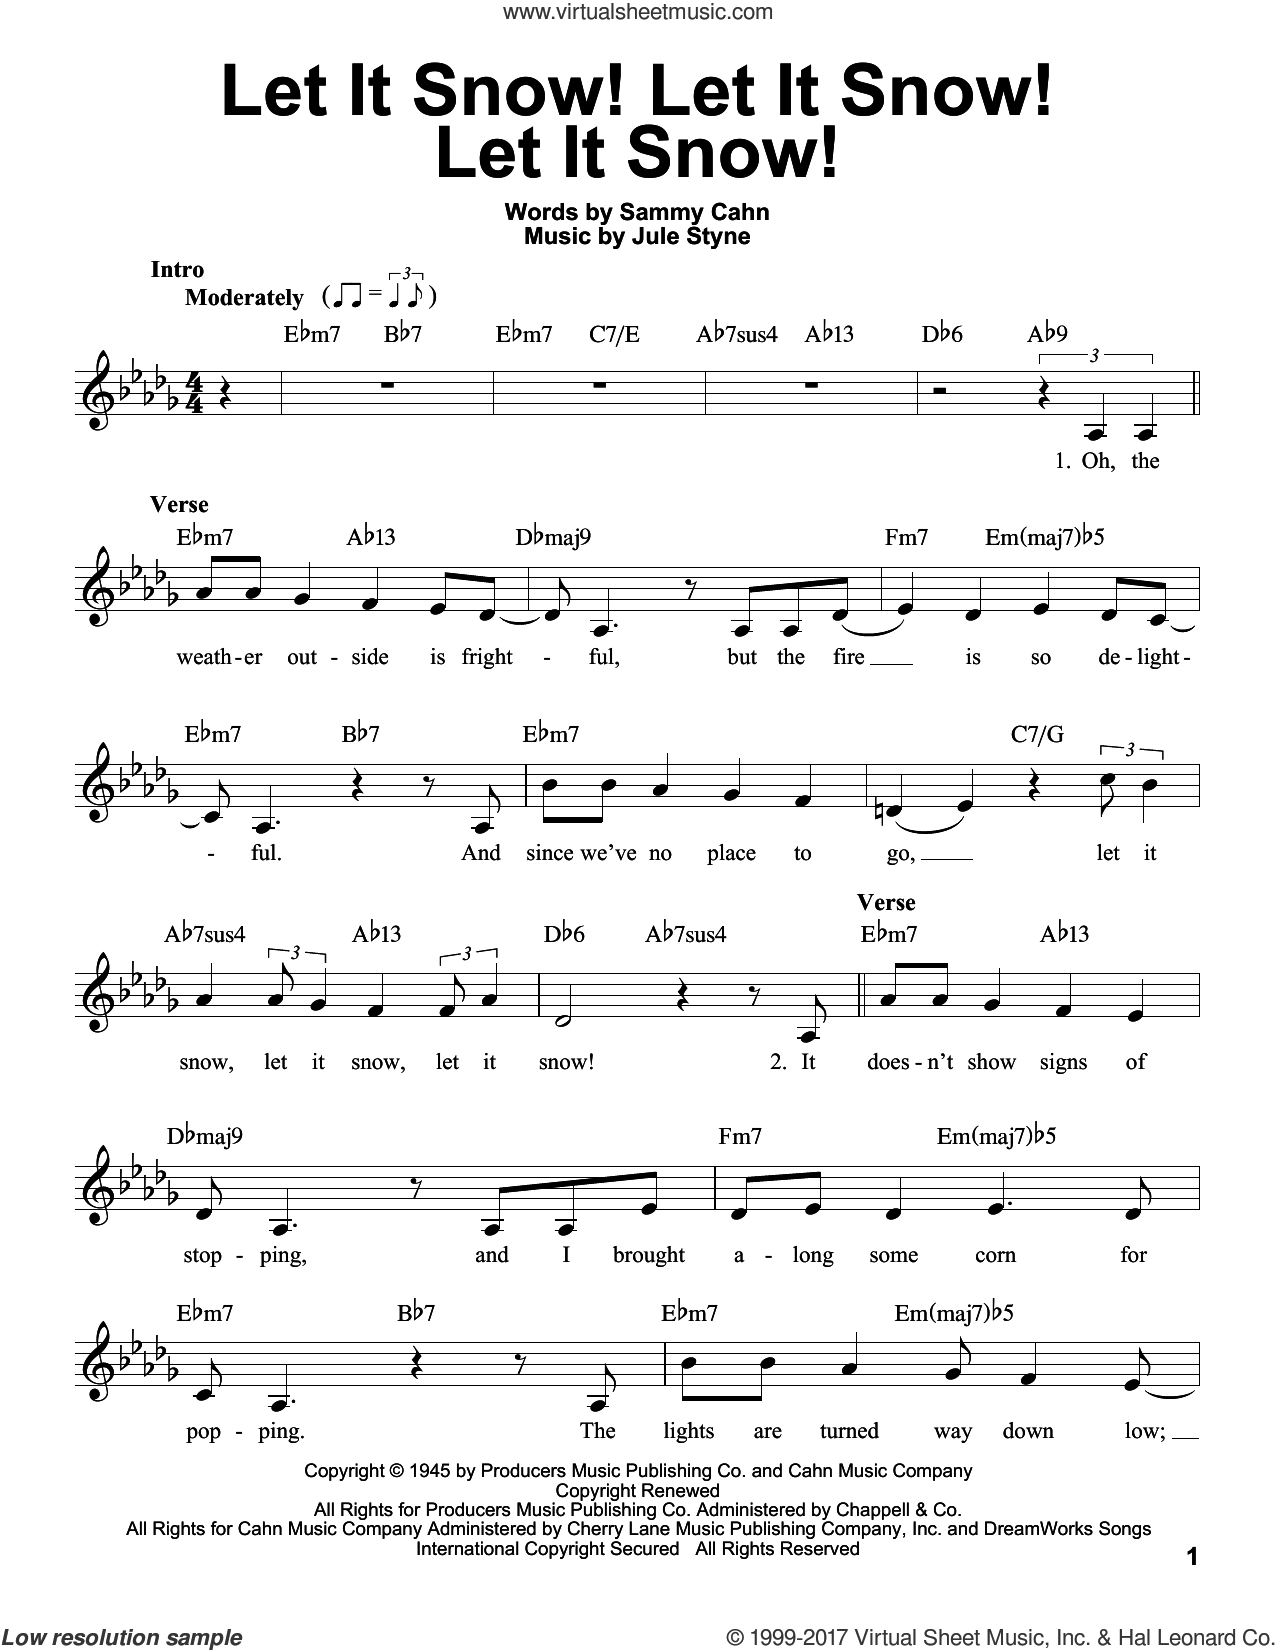 Let It Snow! Let It Snow! Let It Snow! sheet music for voice solo by Sammy Cahn and Jule Styne, intermediate skill level